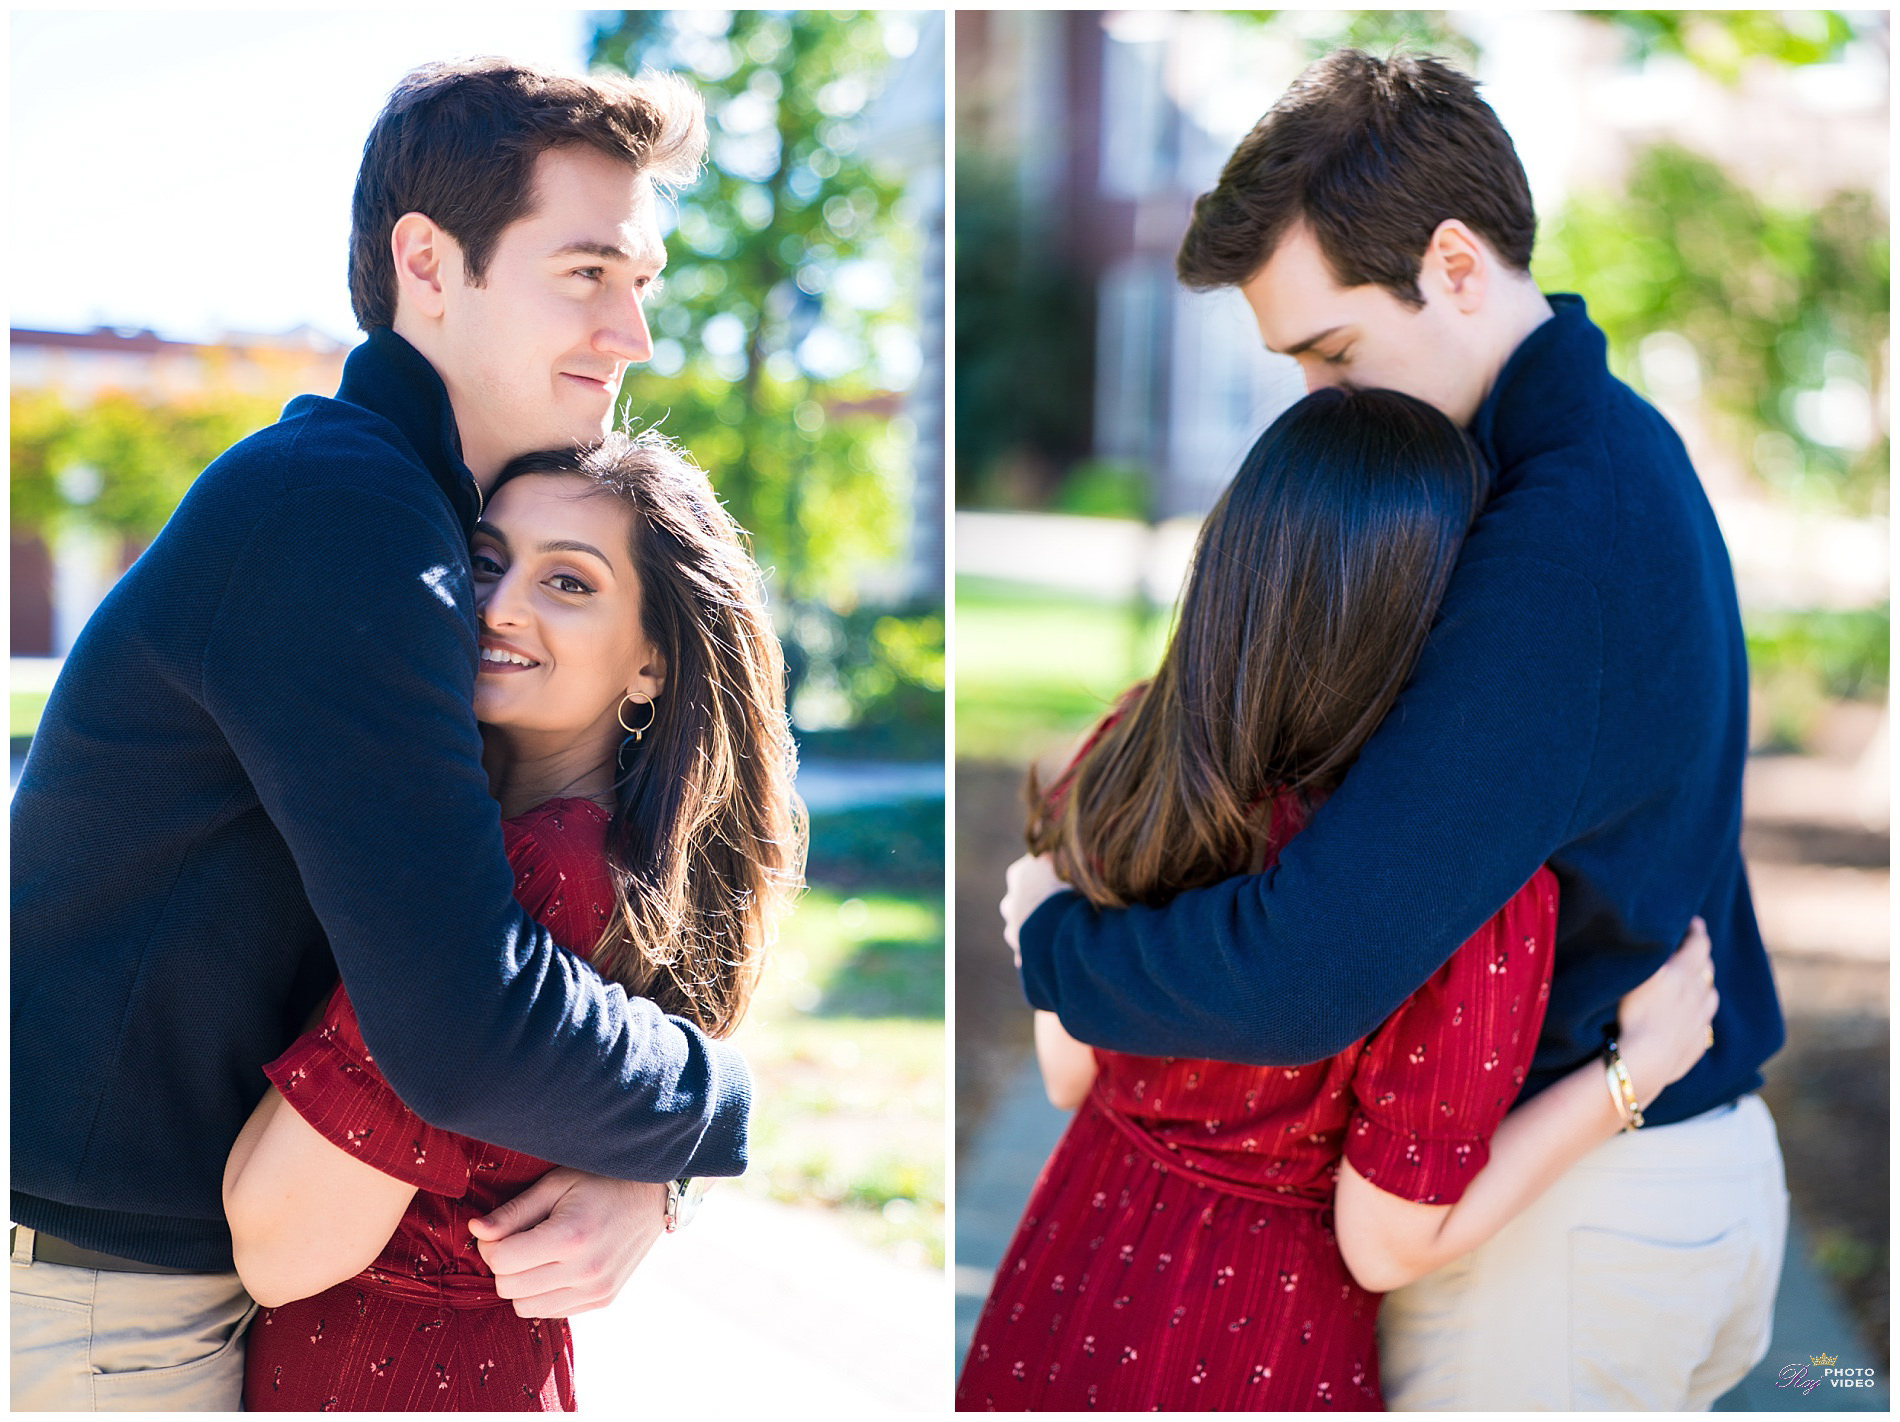 The-College-of-New-Jersey-Engagement-Shoot-Prerna-Kevin19.jpg